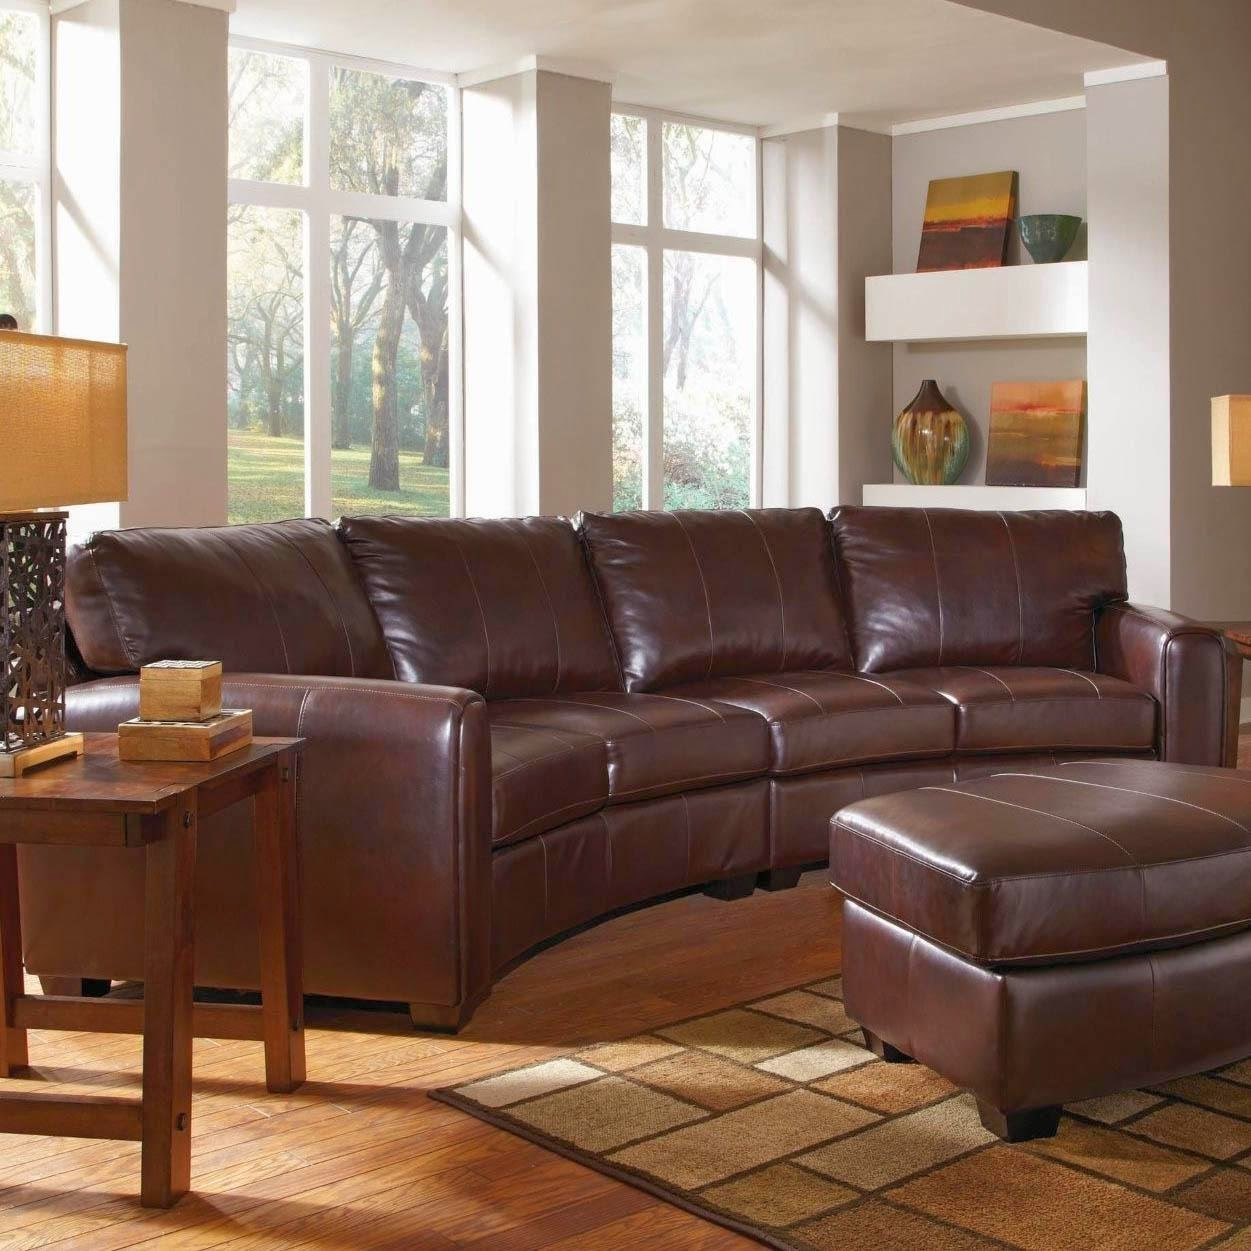 Curved sofa curved leather sofa for Curved leather sectional sofa uk